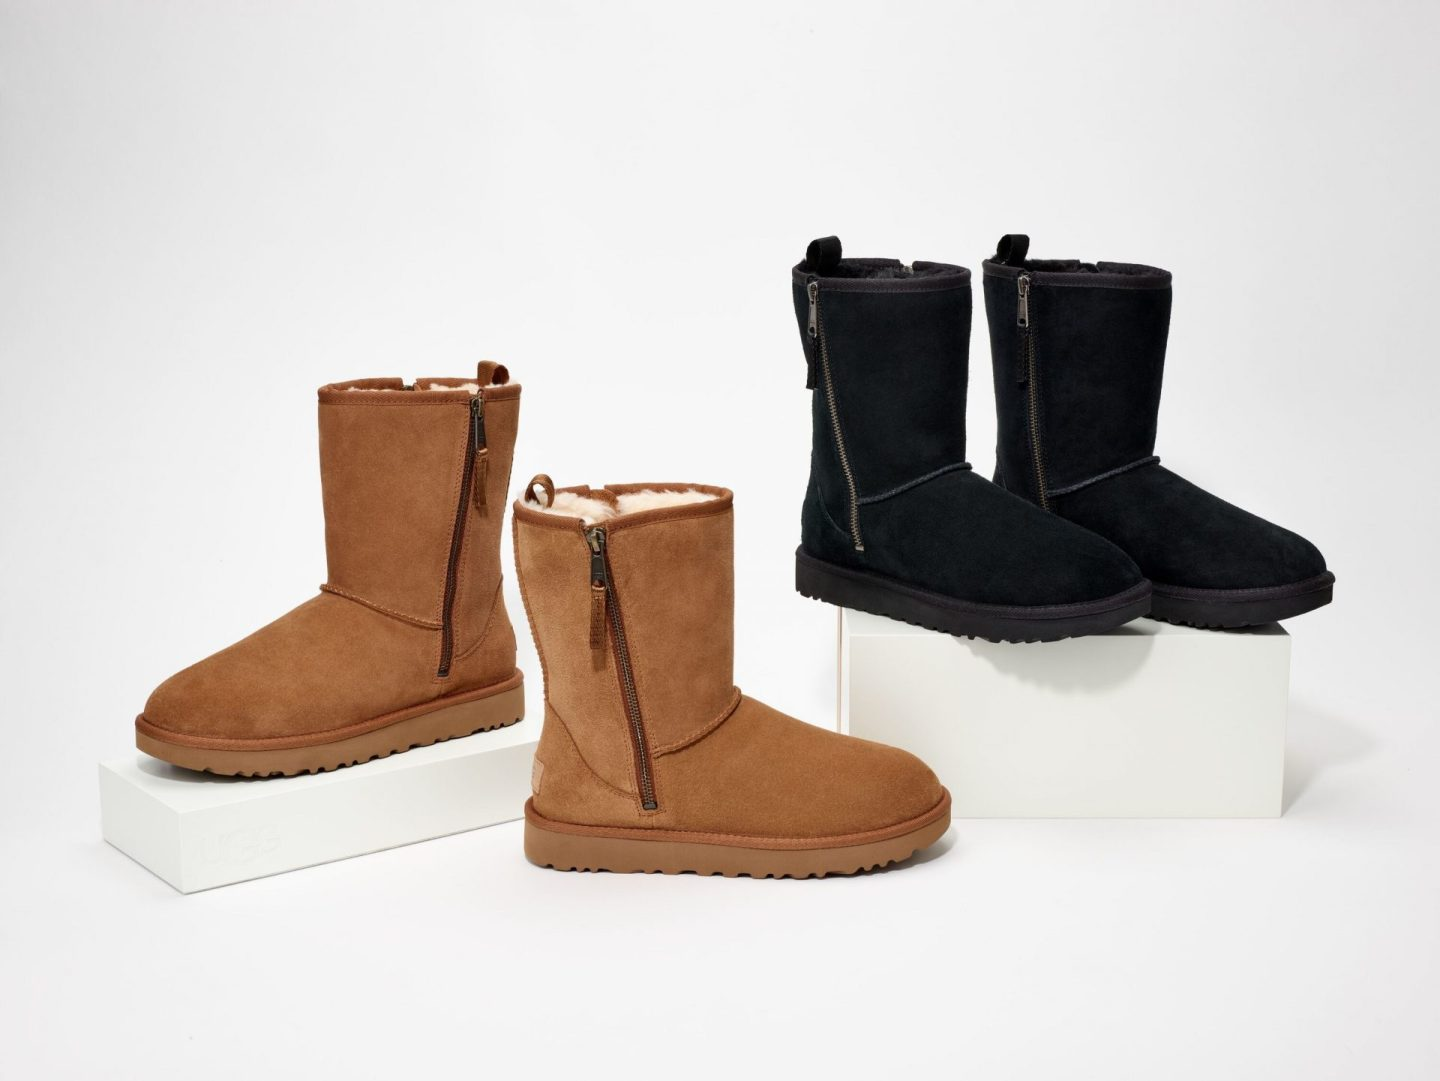 UGG & Zappos.com Launch Inclusive Footwear Collection